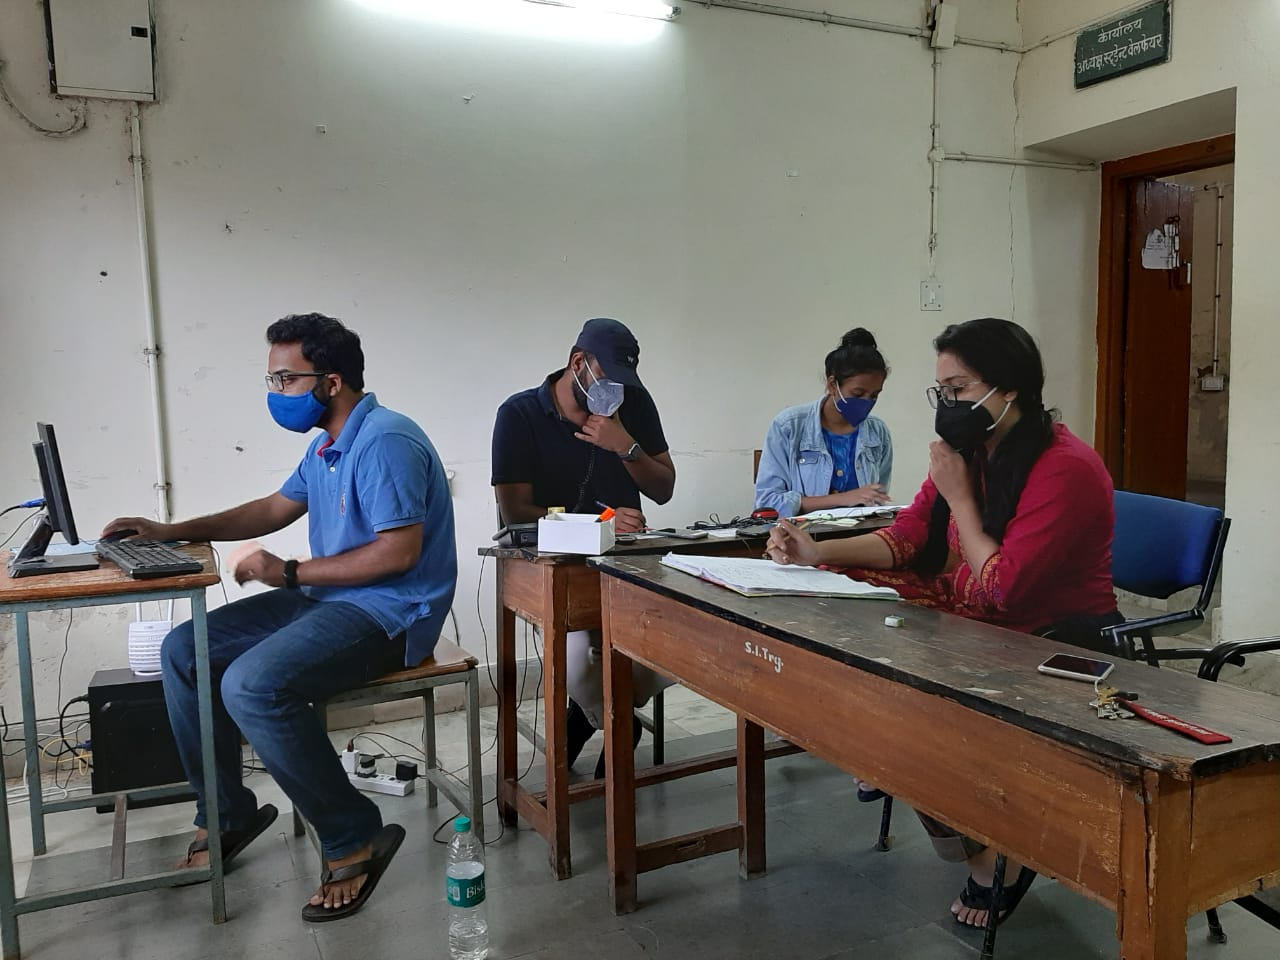 Samvaad Helpline volunteers